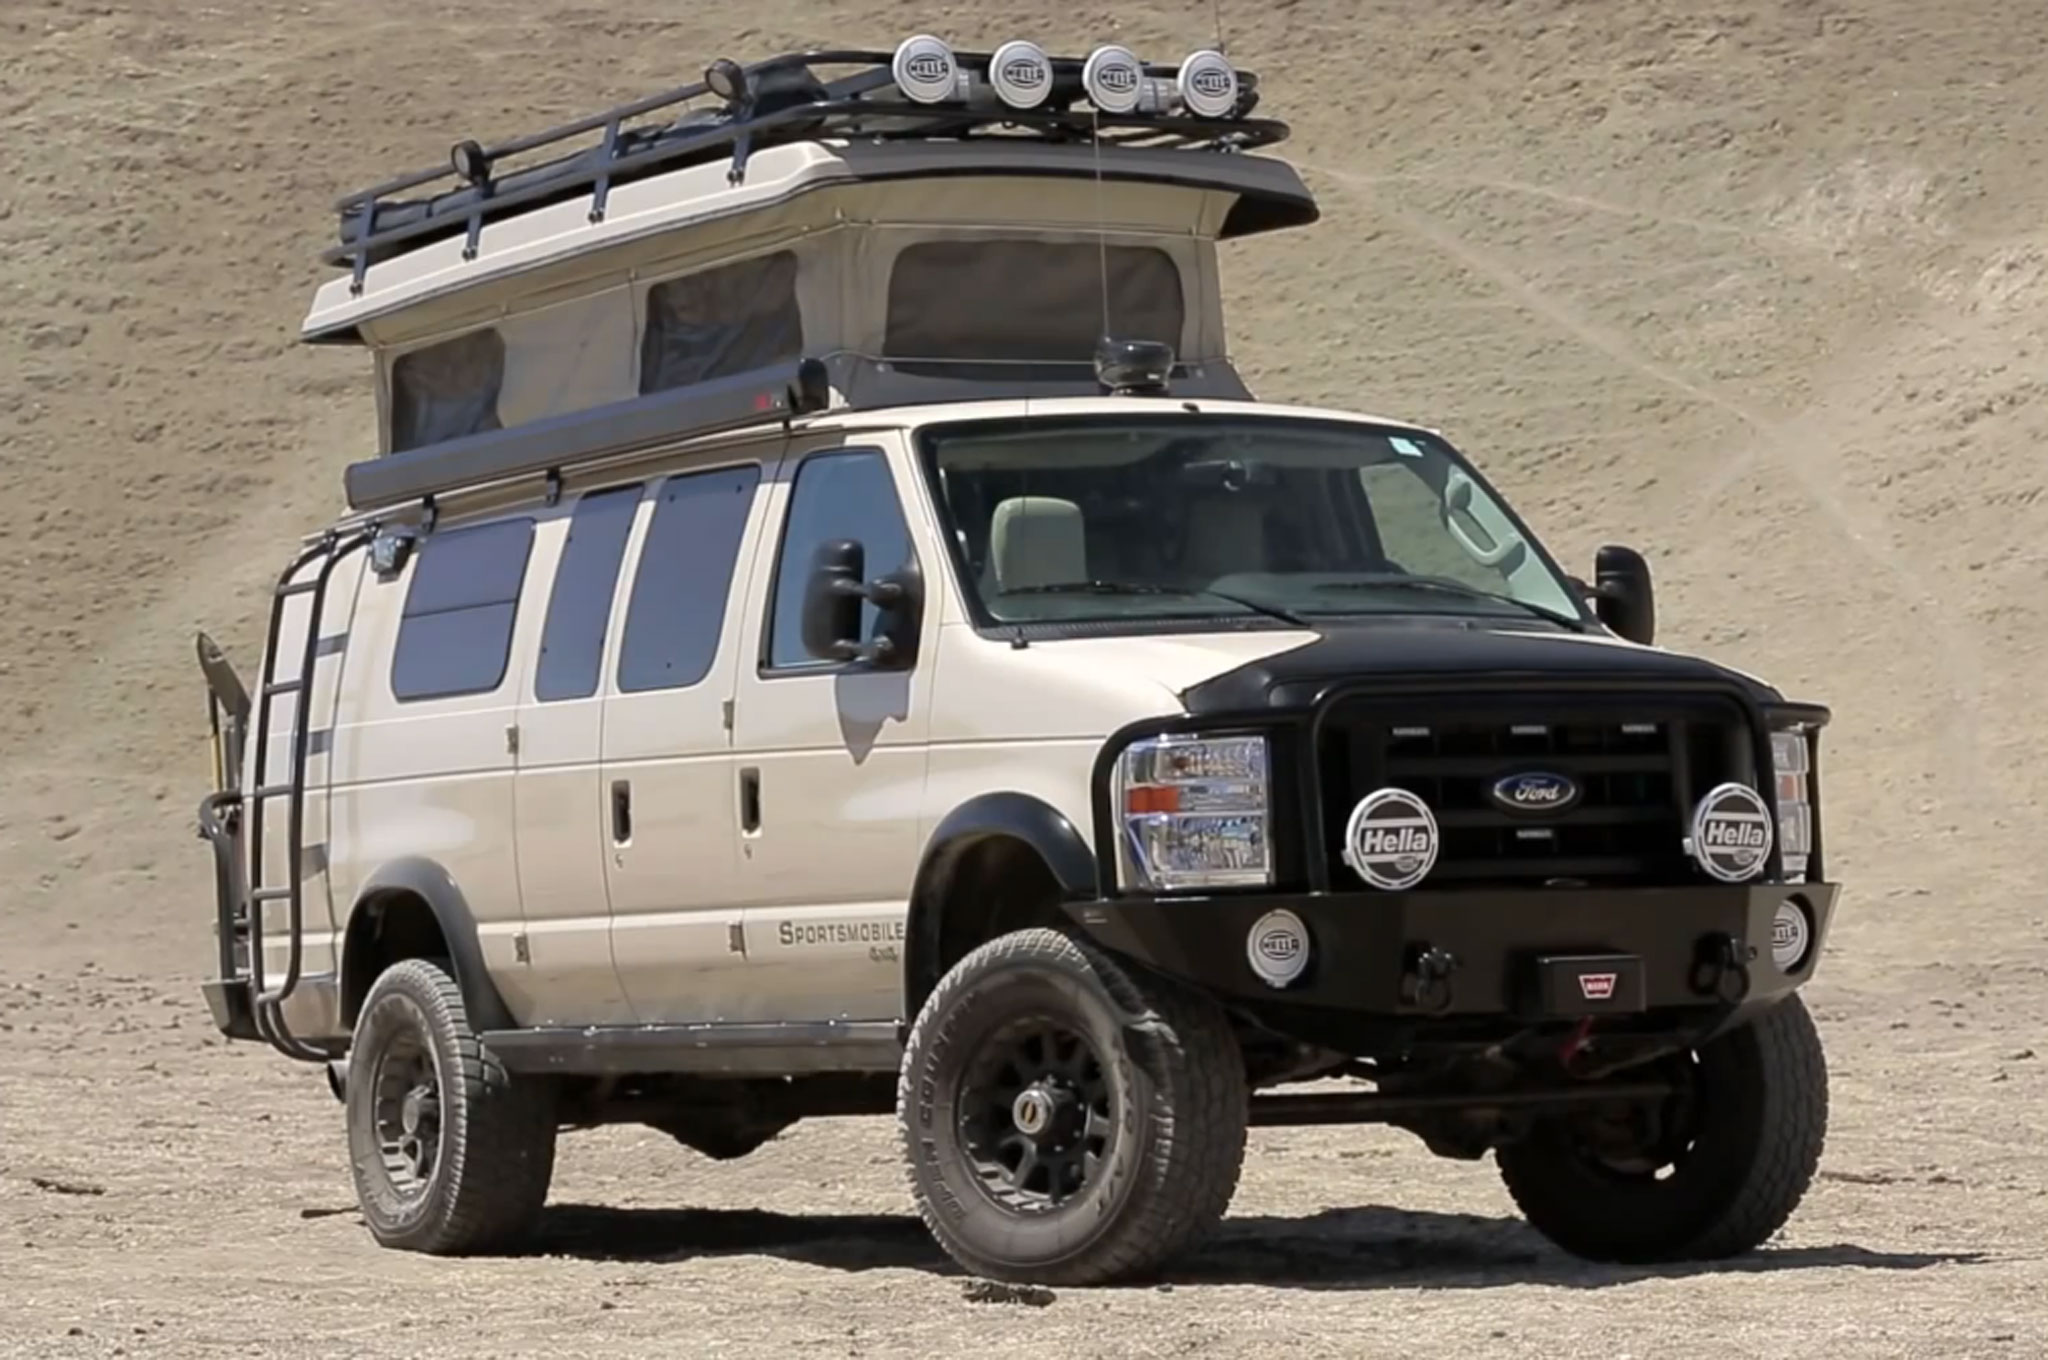 Ford 4x4 Sportsmobile Pace Arrow RV In Off Road Camper War W Video